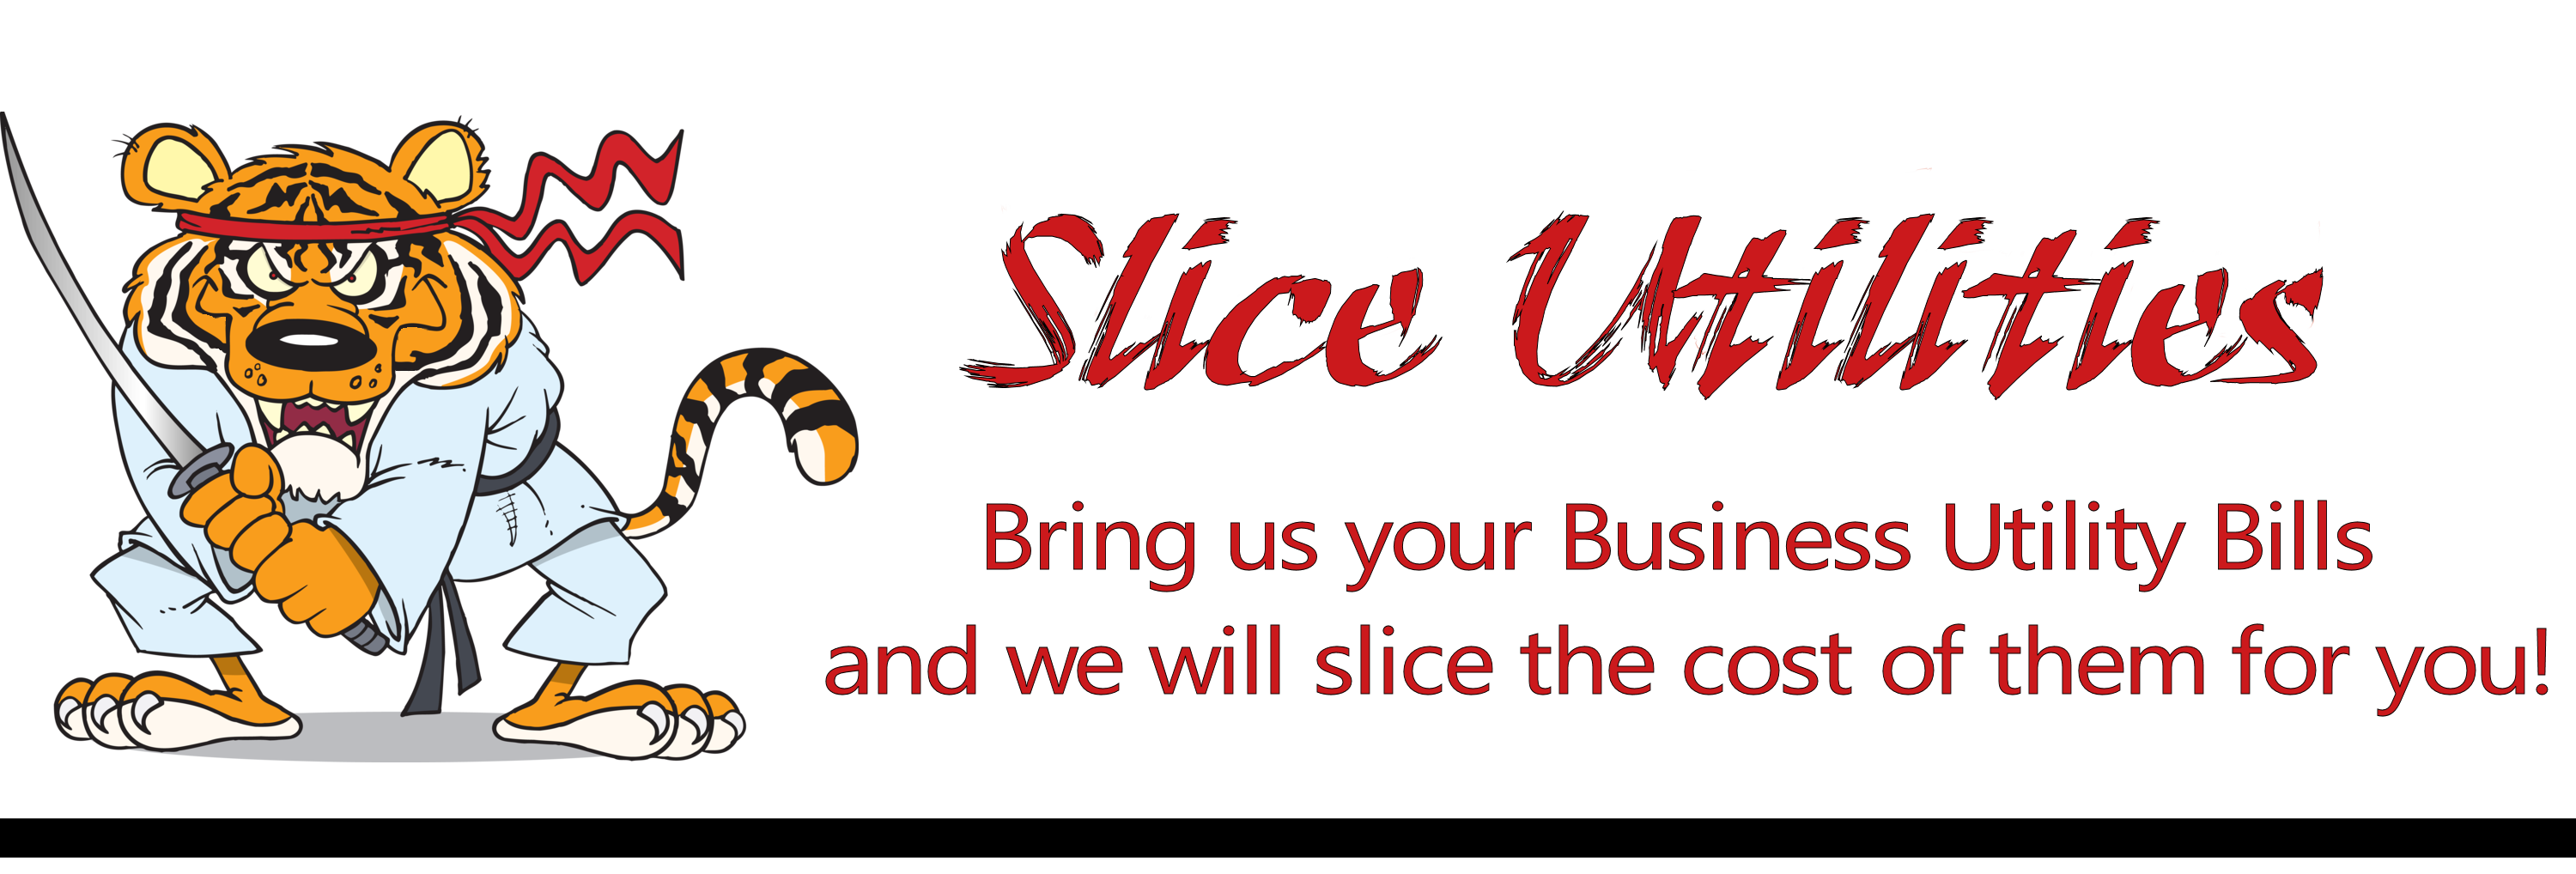 Silce Utilities - Bring us your busiiness Utility Bills and we will slice the cost of them for you!